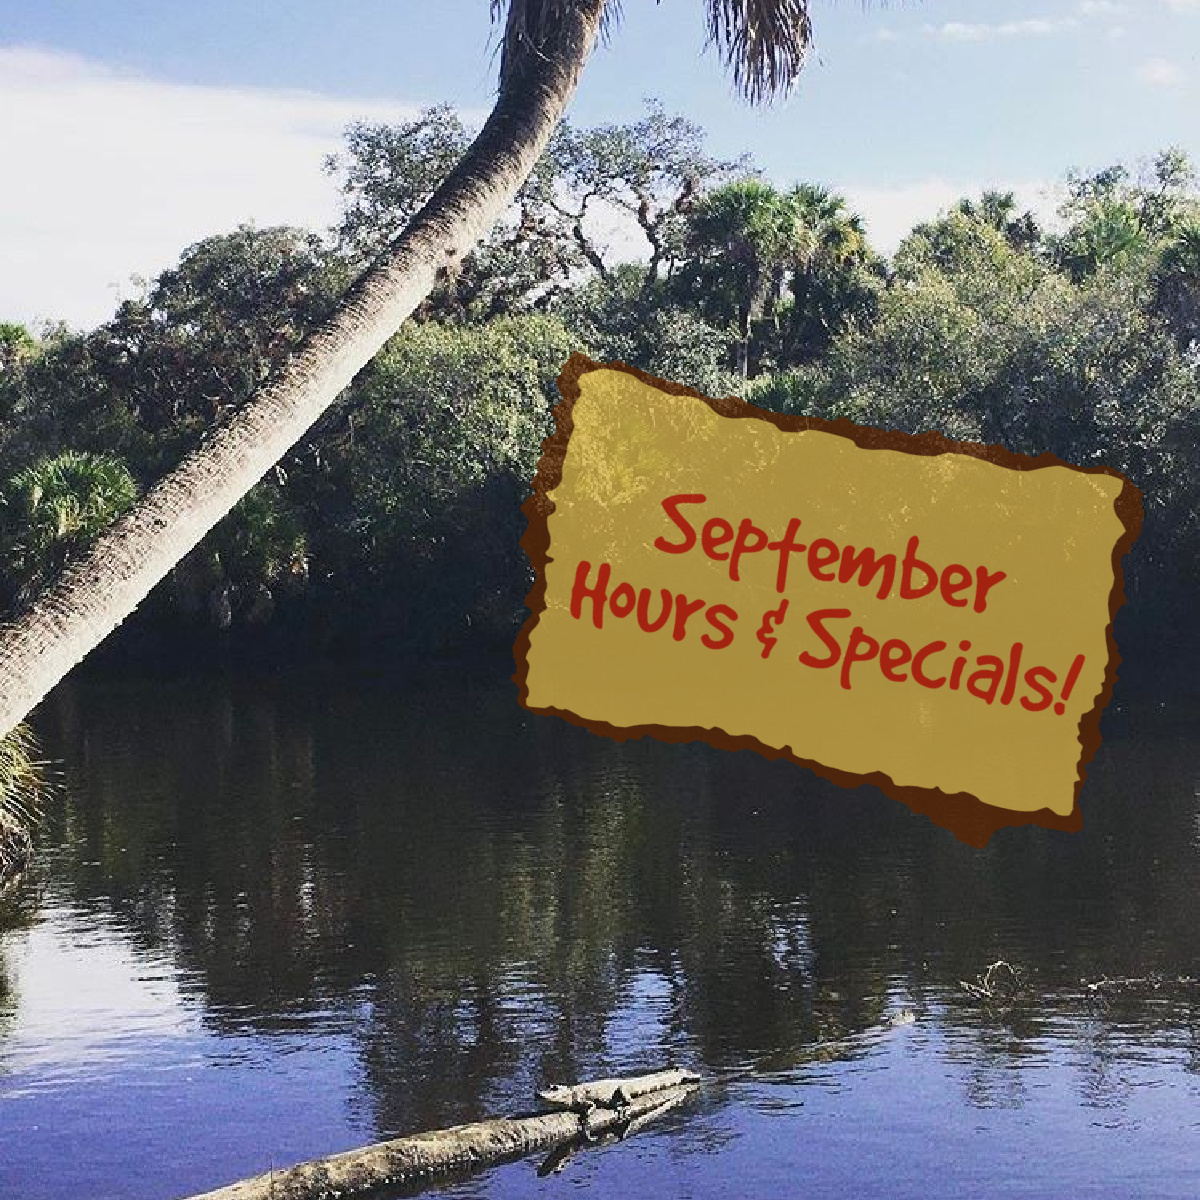 September at Snook Haven - Hours, Specials & Music!